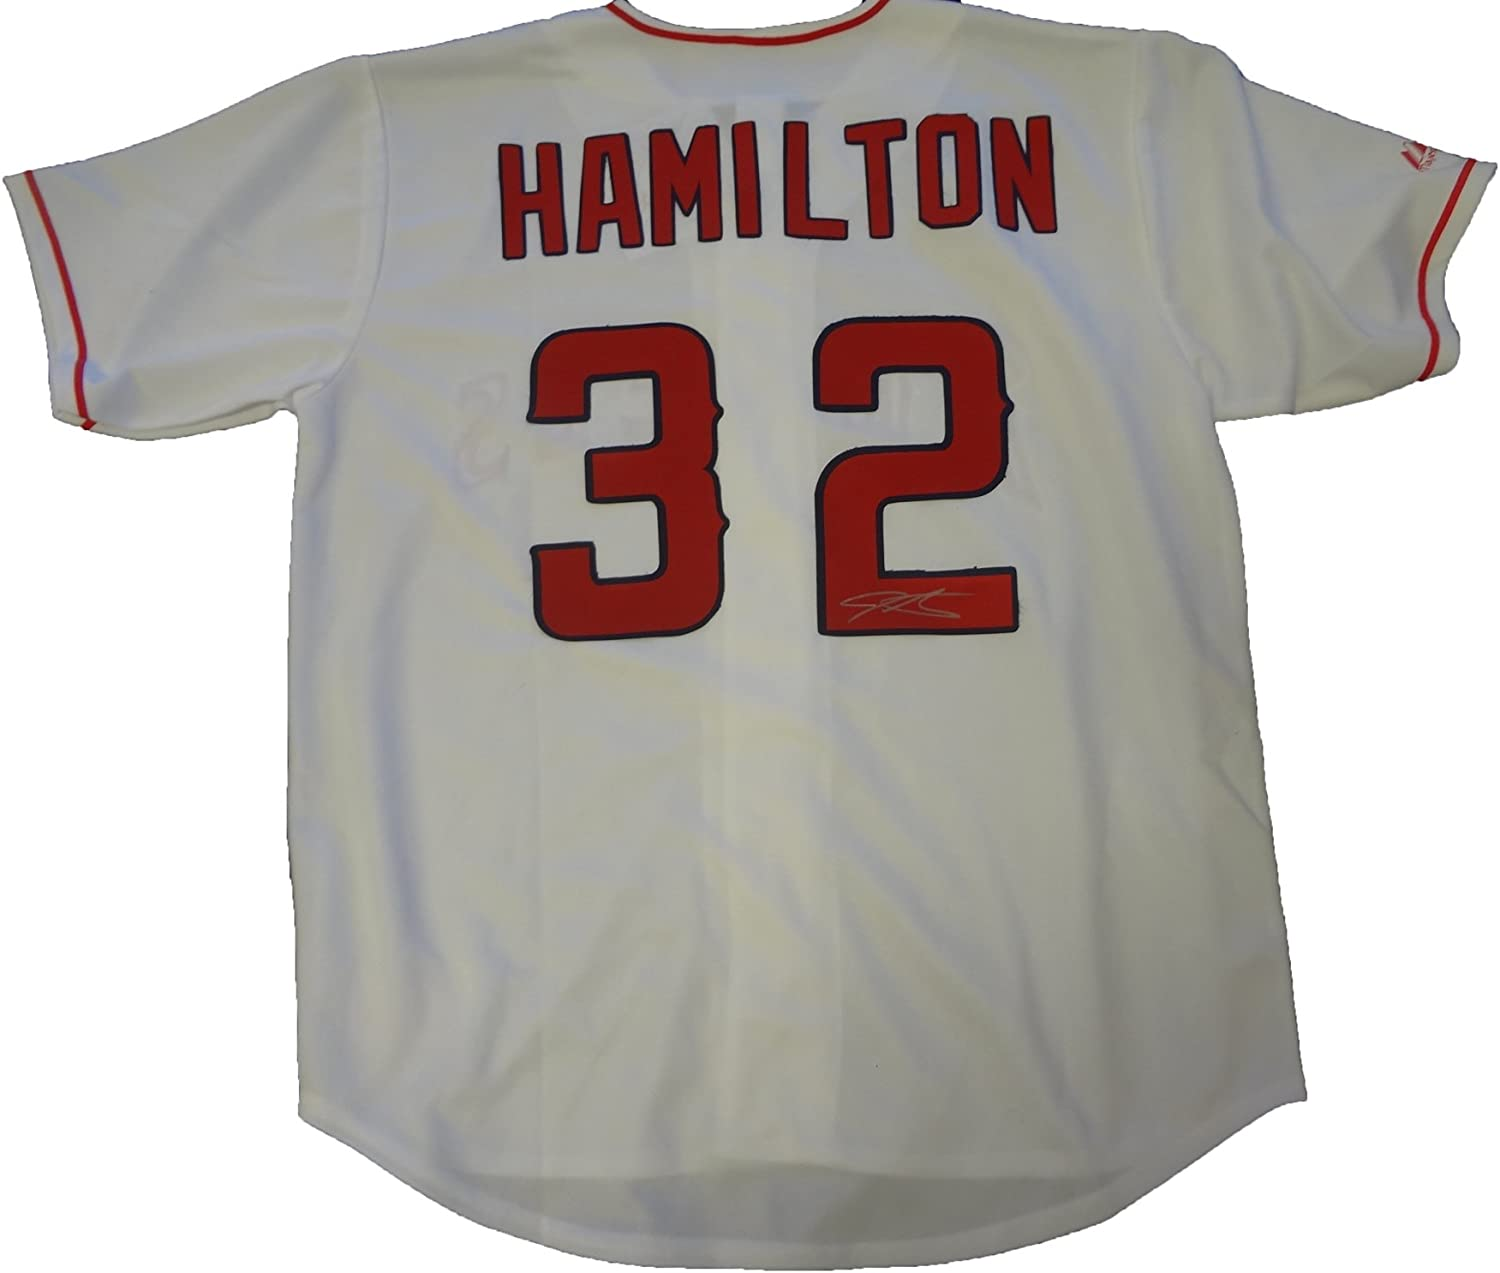 B00BWSMSK4 Josh Hamilton Autographed Los Angeles Angels of Anaheim Jersey W/PROOF, Picture of Josh Signing For Us, Los Angeles Angels of Anaheim, Anaheim Angels, Texas Rangers, World Series, Tampa Bay Devil Rays 71TXVEwPs0L.SL1500_